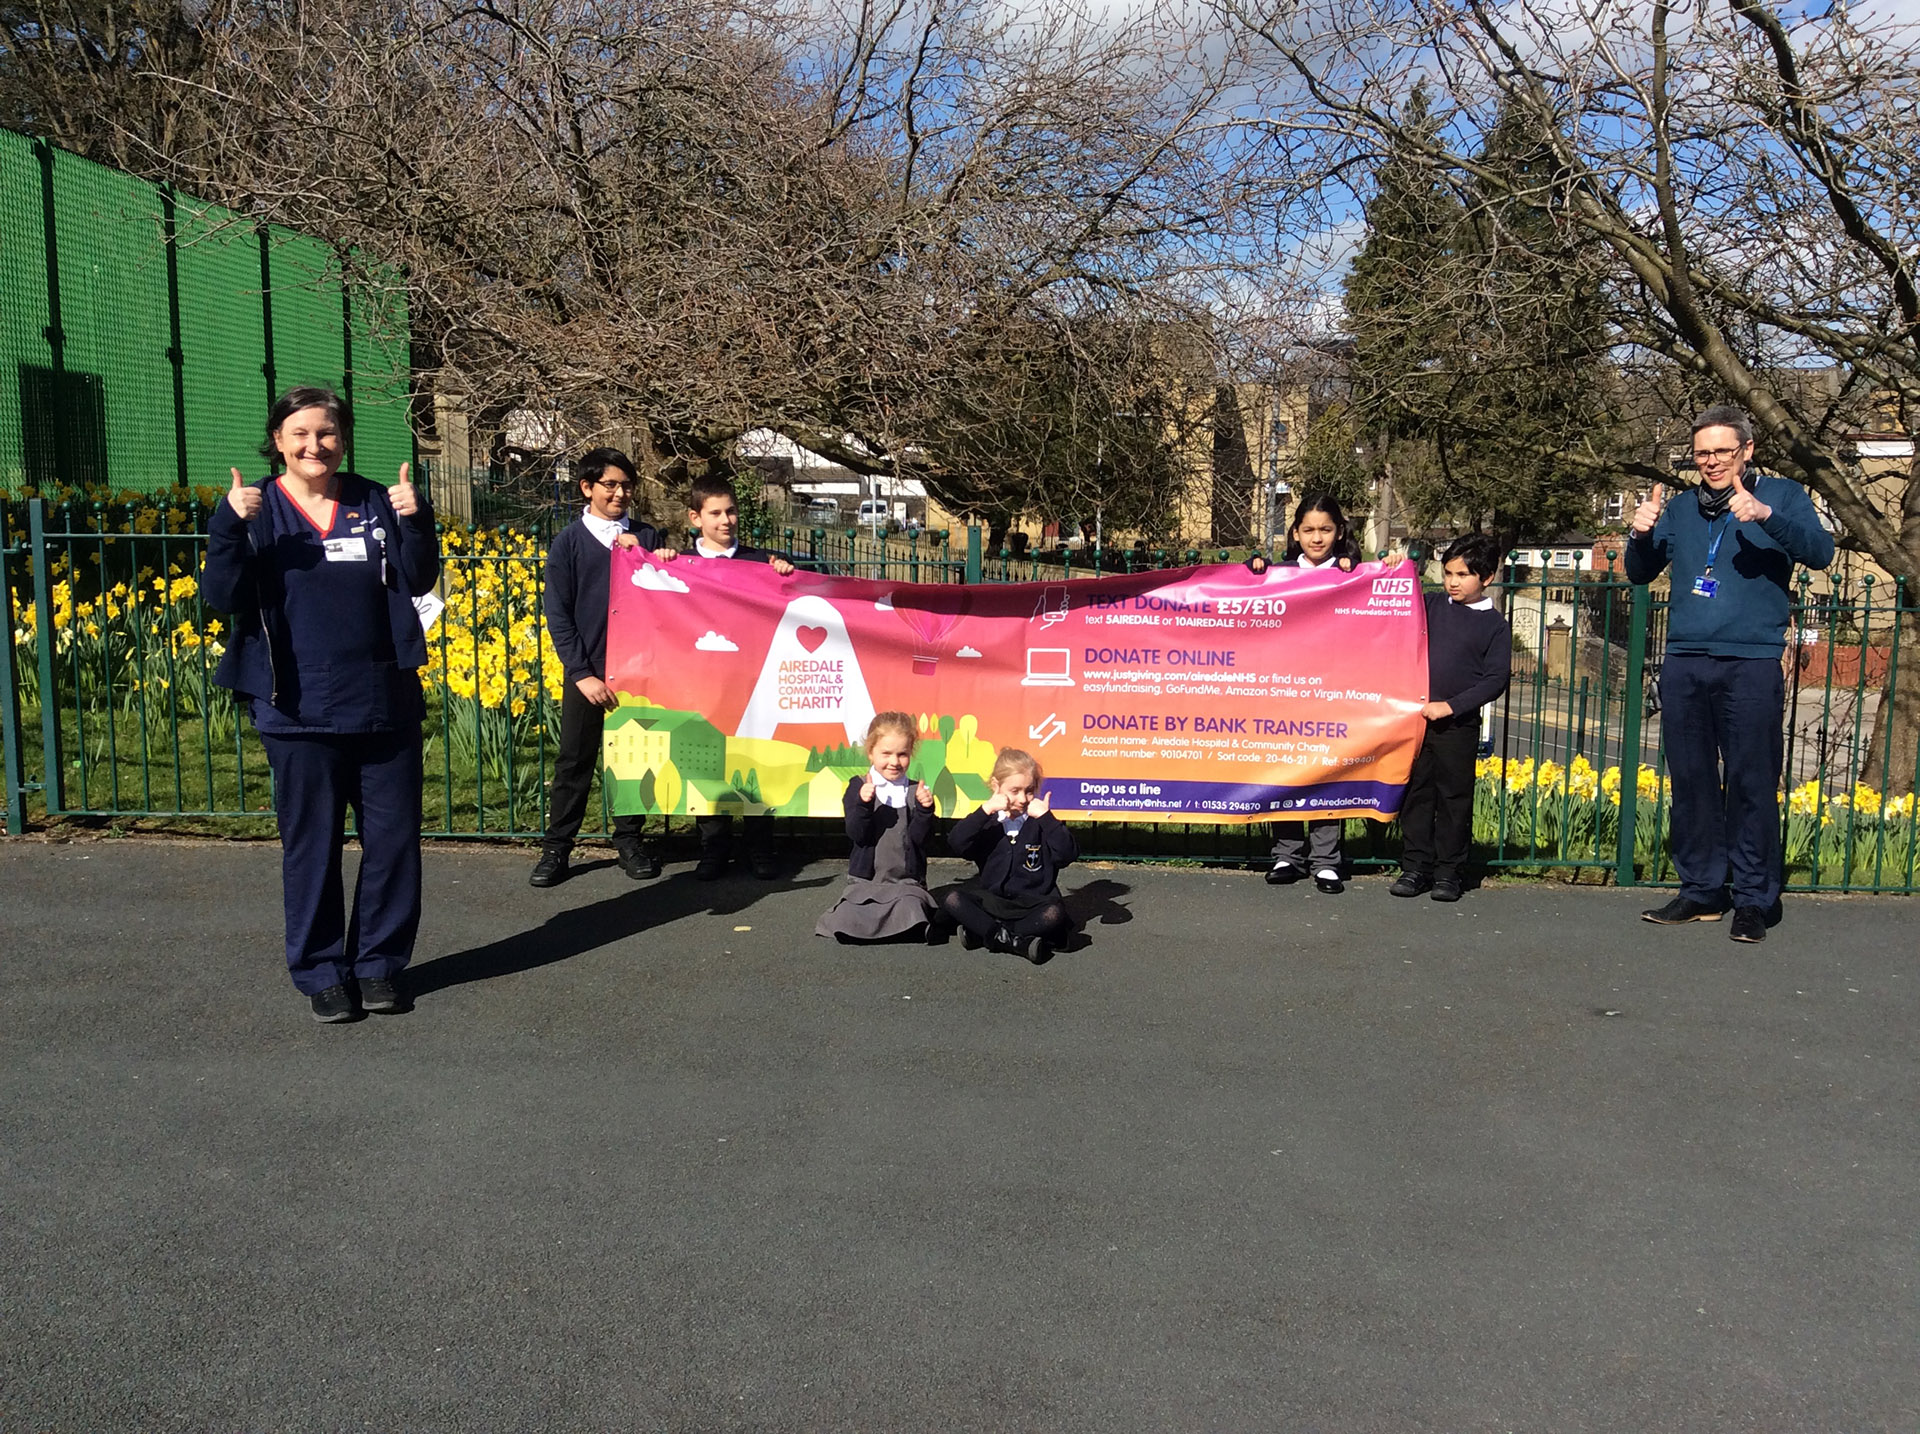 Students supporting the charity